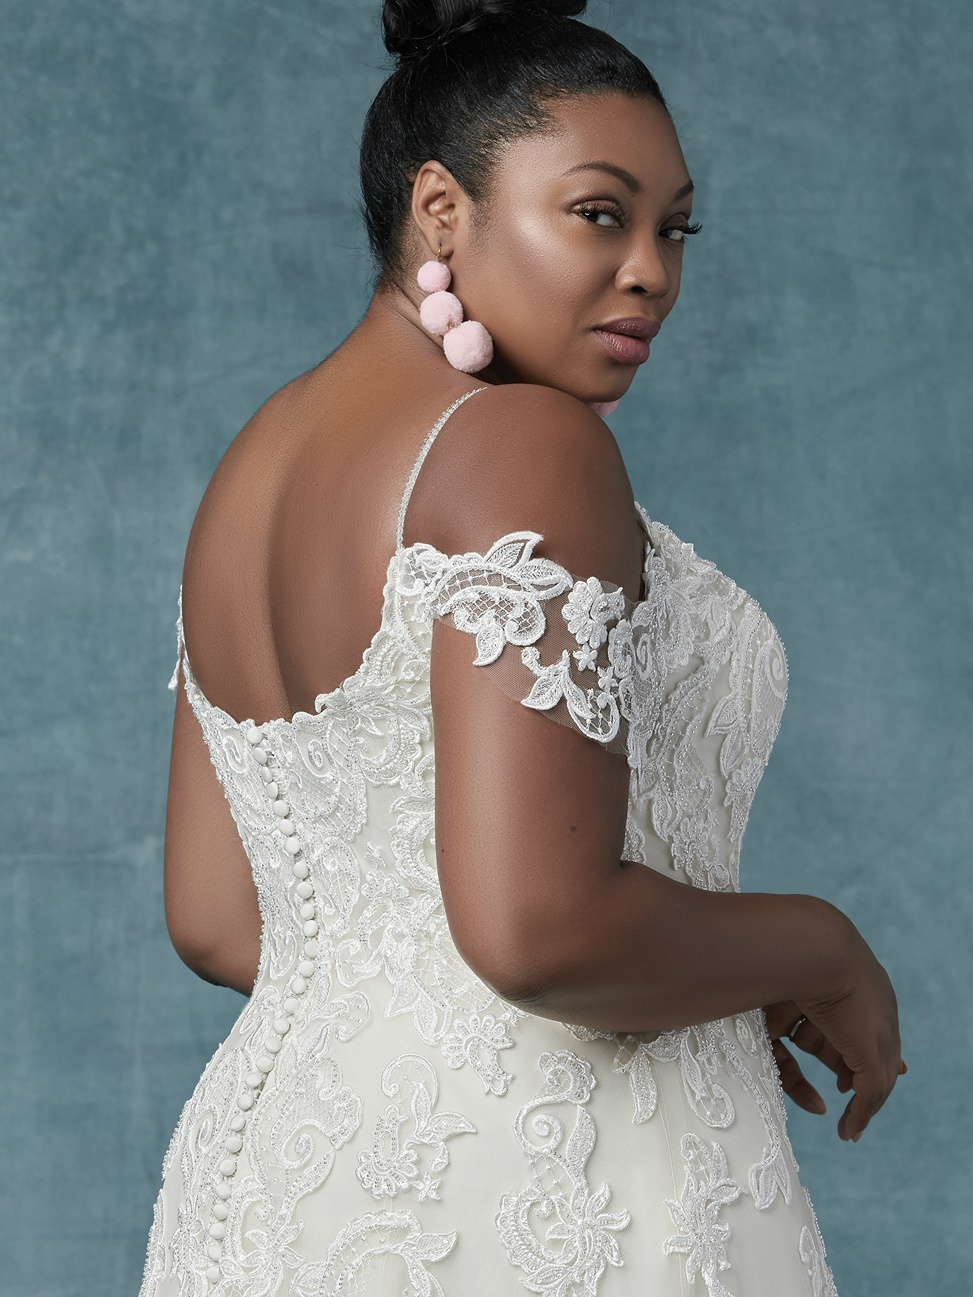 a plus size black bride wears the sorrento lynette gown with off-the-shoulder lace from maggie sottero designs